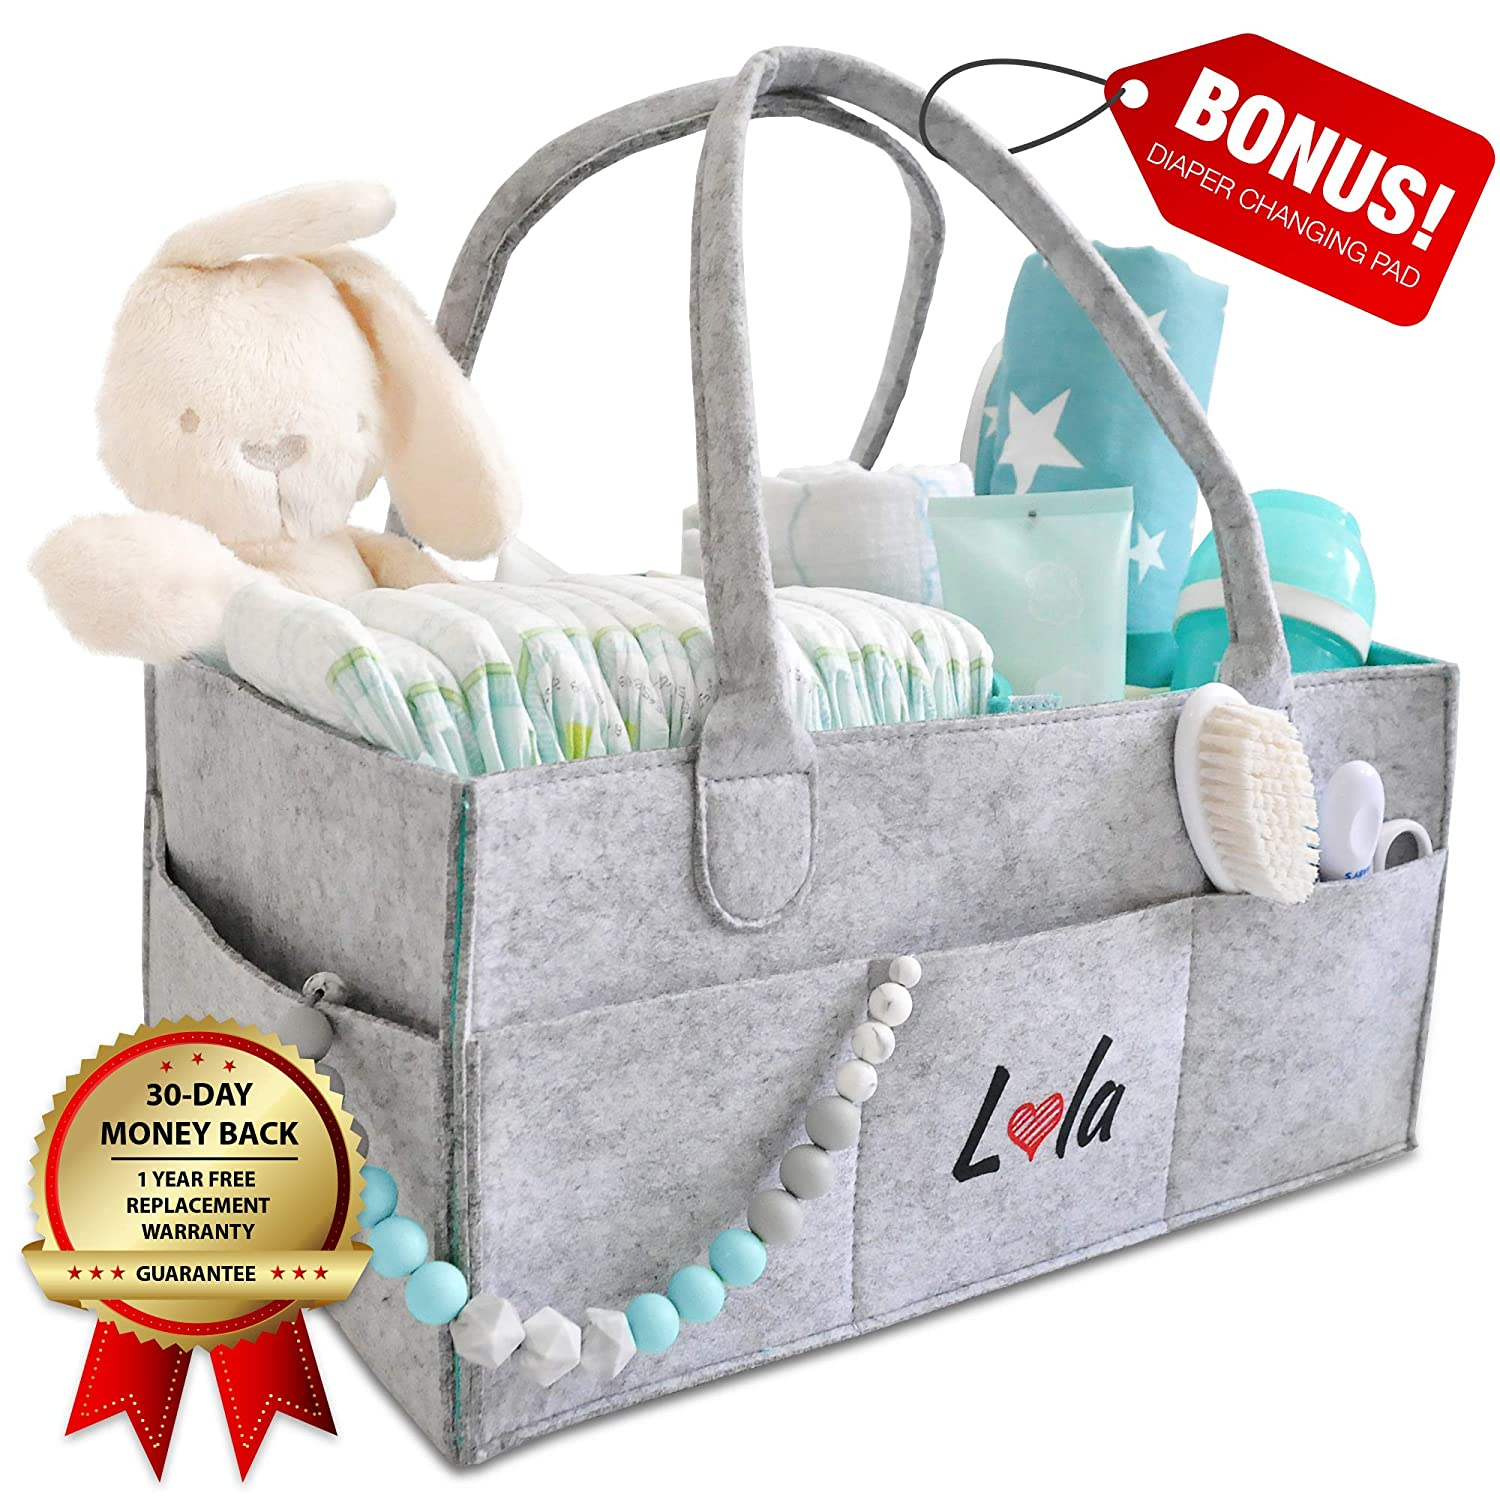 Baby Diaper Caddy Nursery Organizer - Portable Baby Essentials for Home and Car. Modular Pockets for Easy Storage and Convenience. Bonus Changing Pad - Perfect Shower Gift for Newborn by Lola Store Baby Lola Store